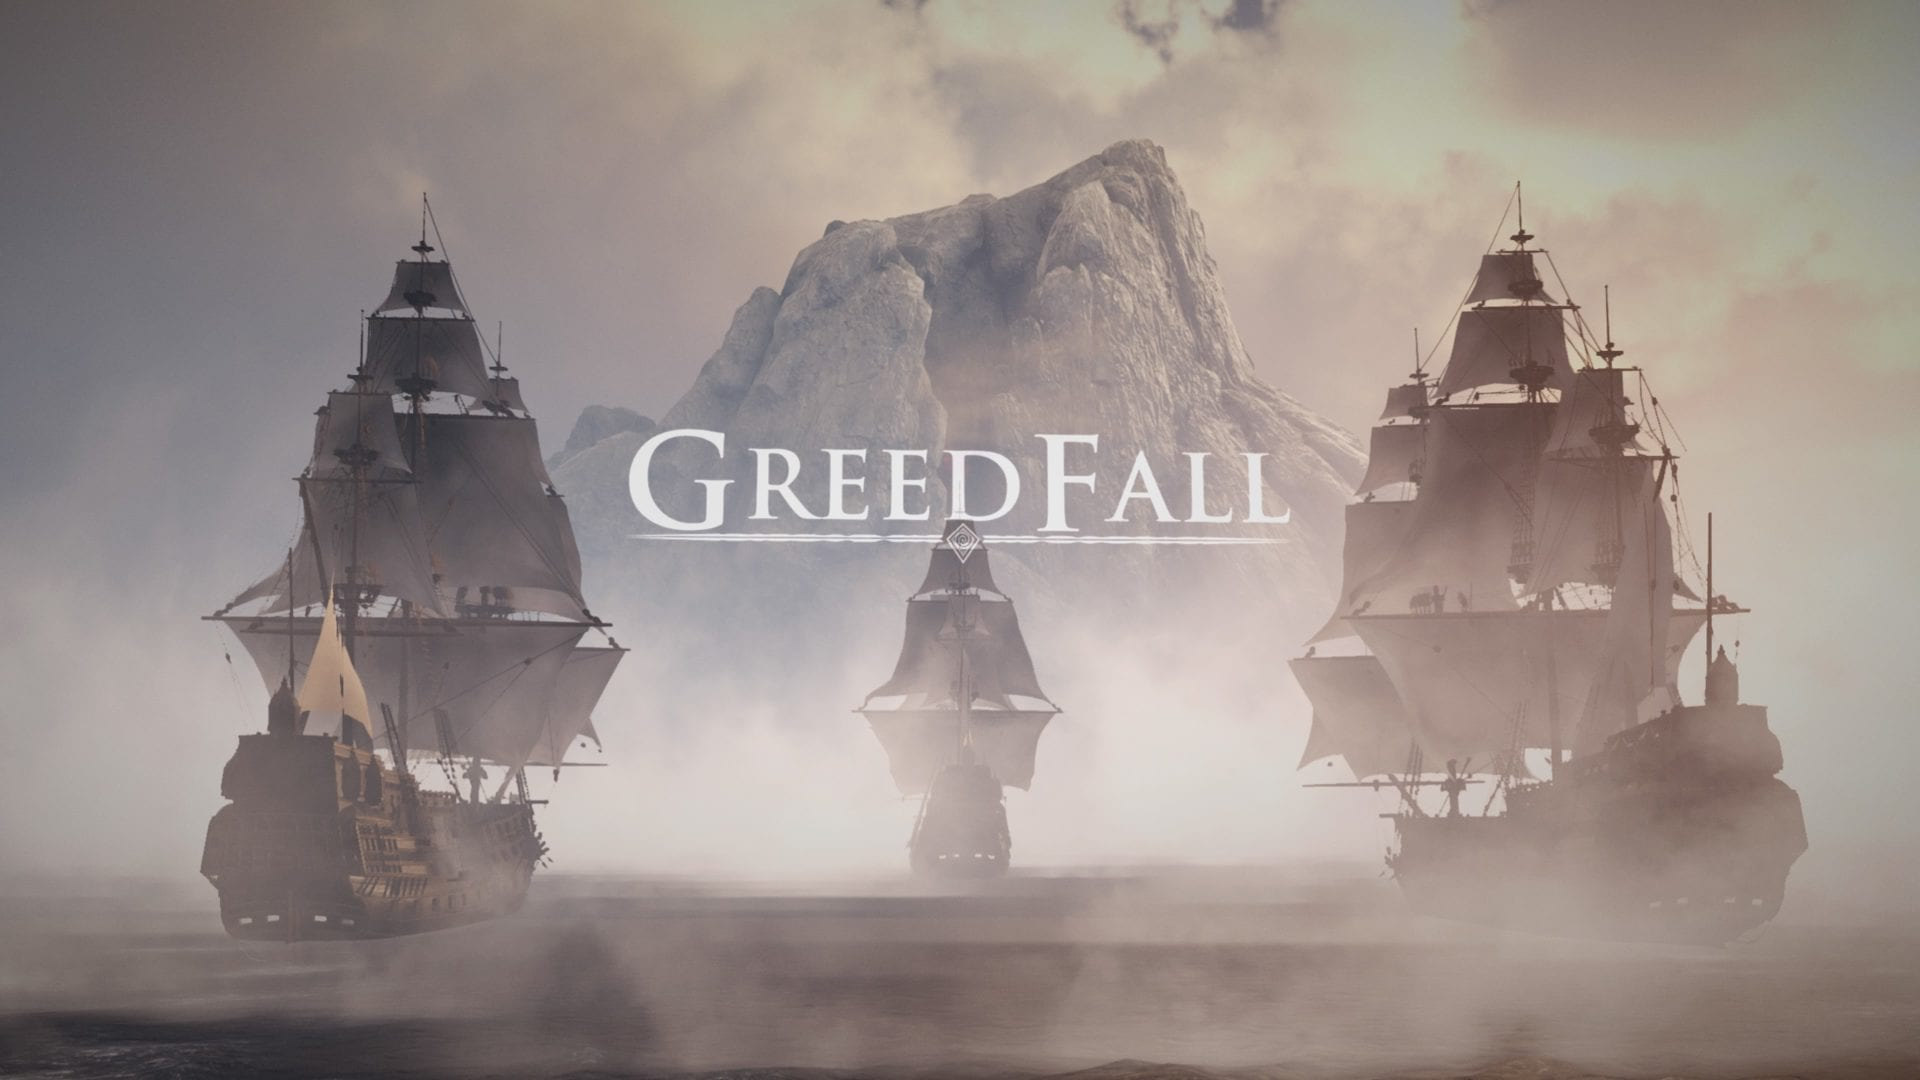 GreedFall, laced drink, coin guard merchandise